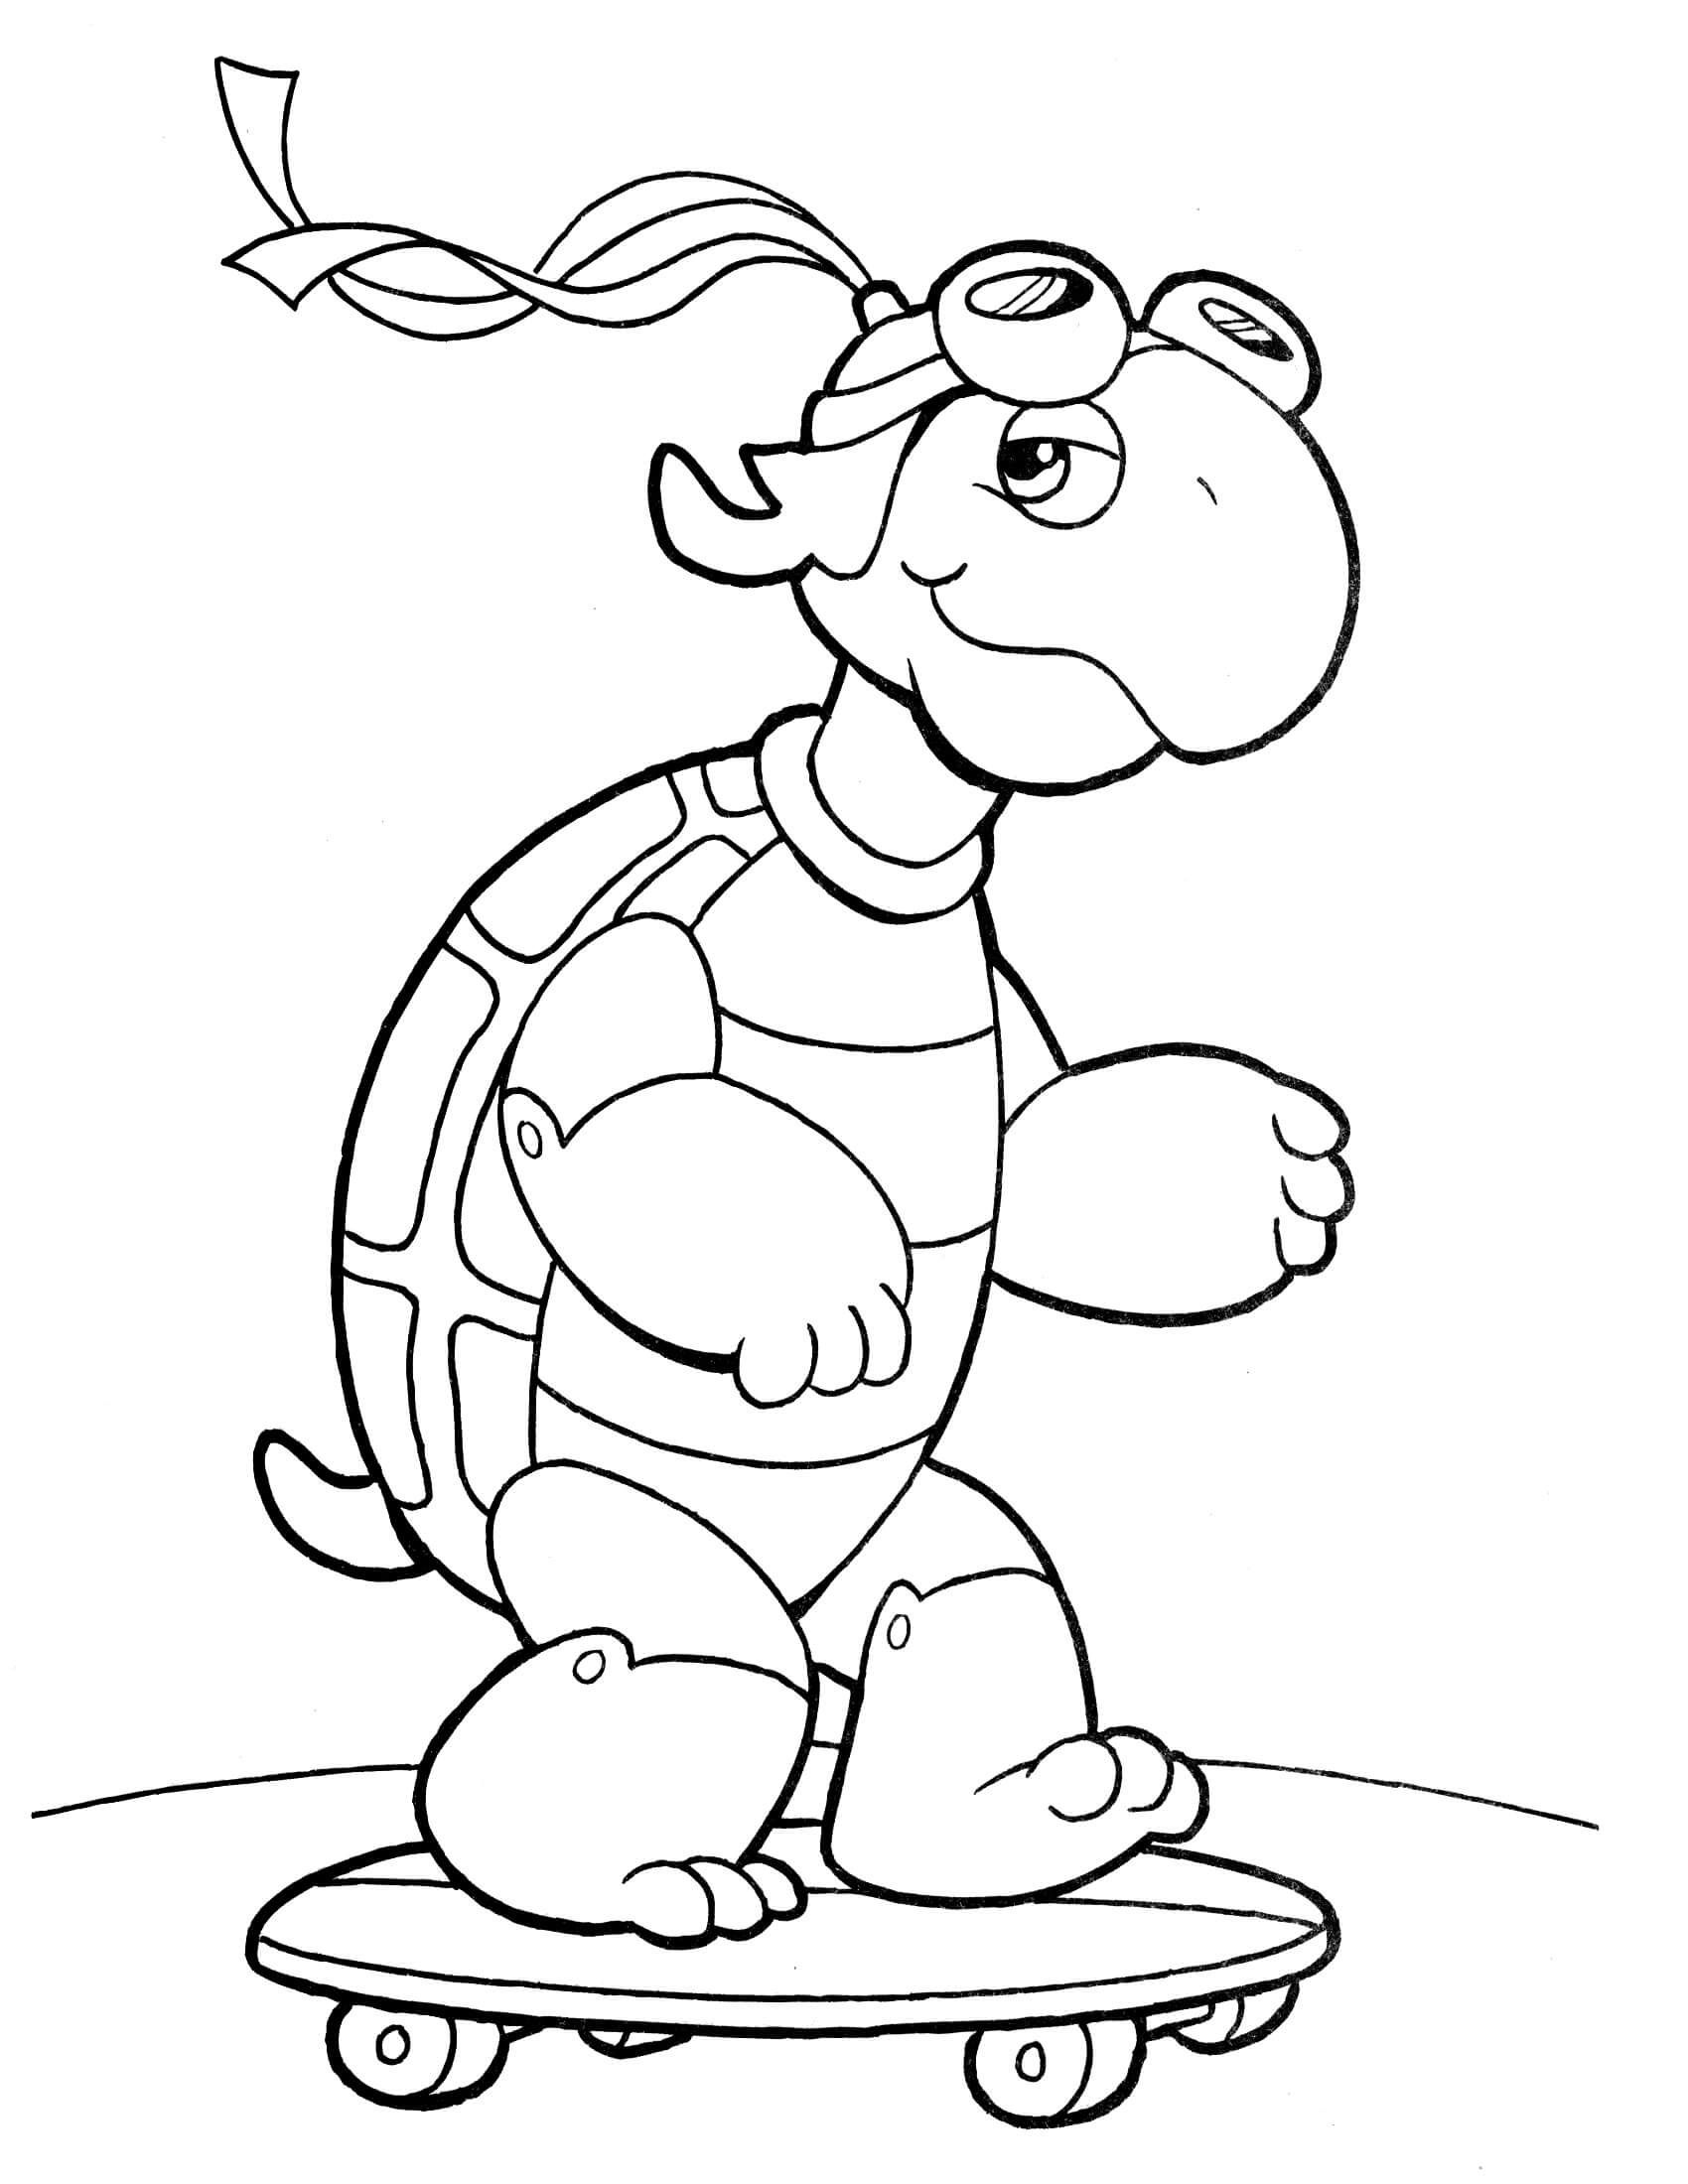 Crayola Coloring Pages For Kids Owl Coloring Pages Puppy Coloring Pages Coloring Pages [ 2200 x 1700 Pixel ]